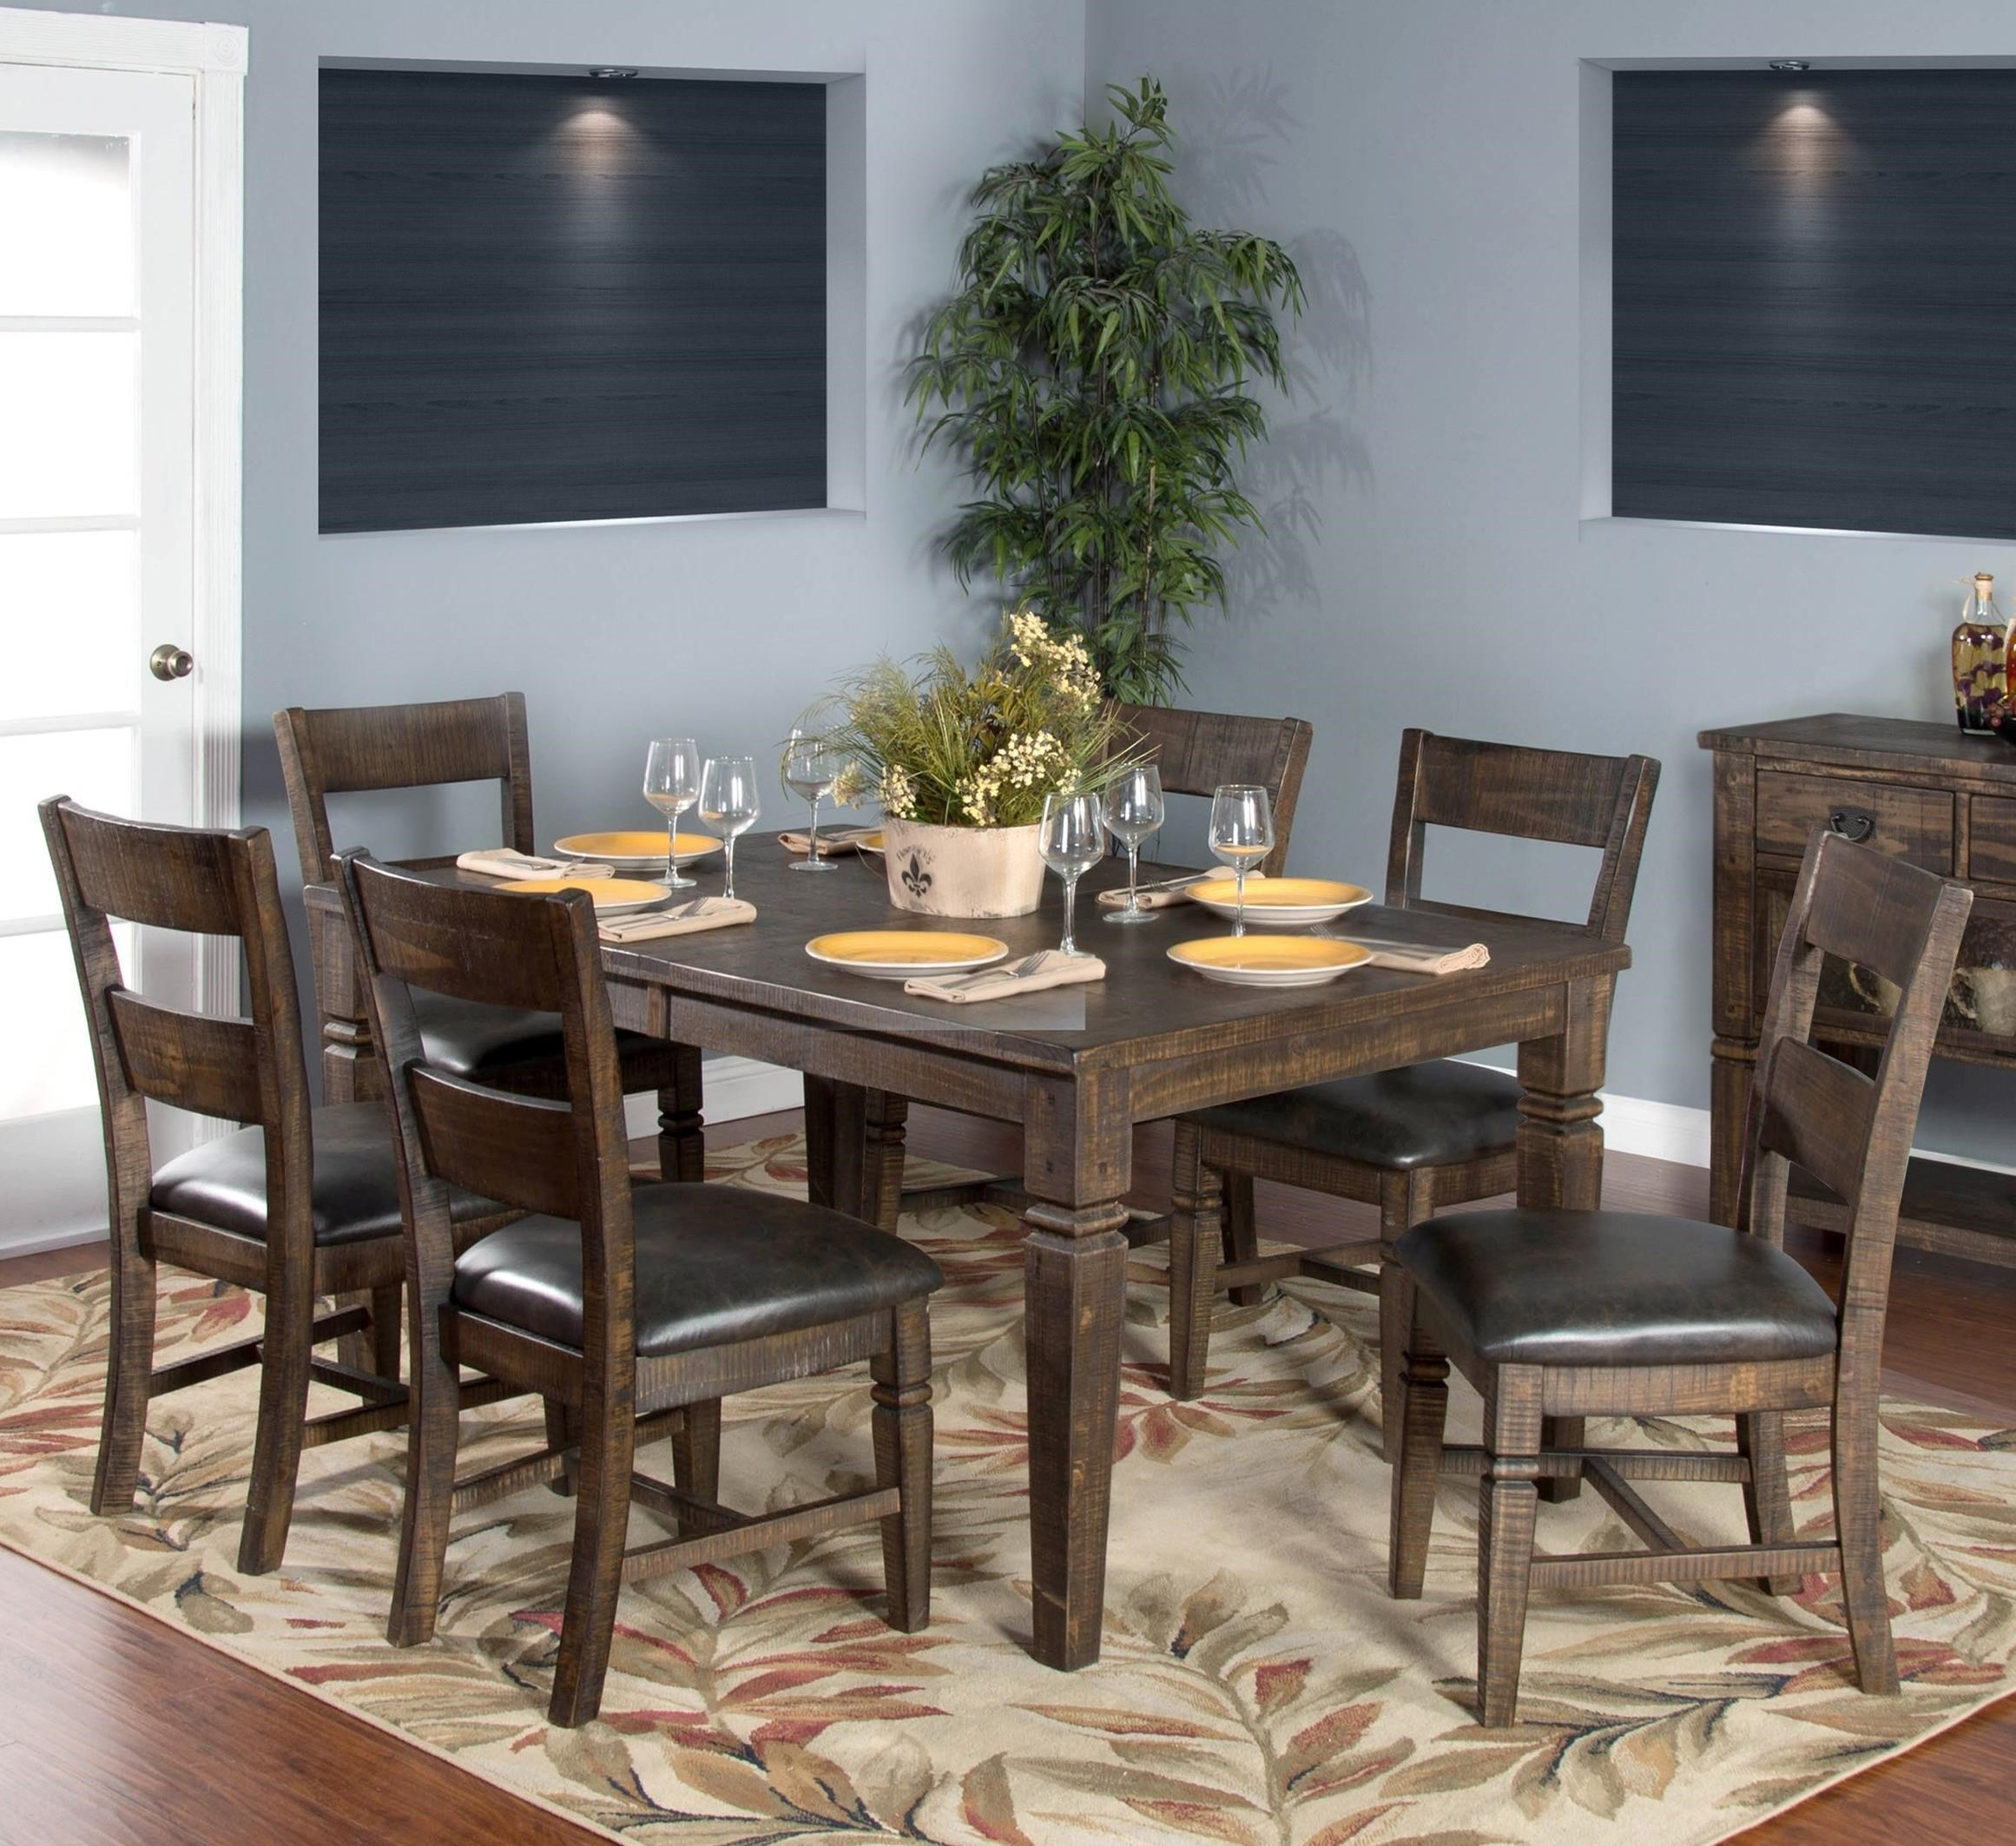 Sunny Designs Homestead 7-Piece Extension Dining Table Set - Item Number: 1012TL+6x1429TL